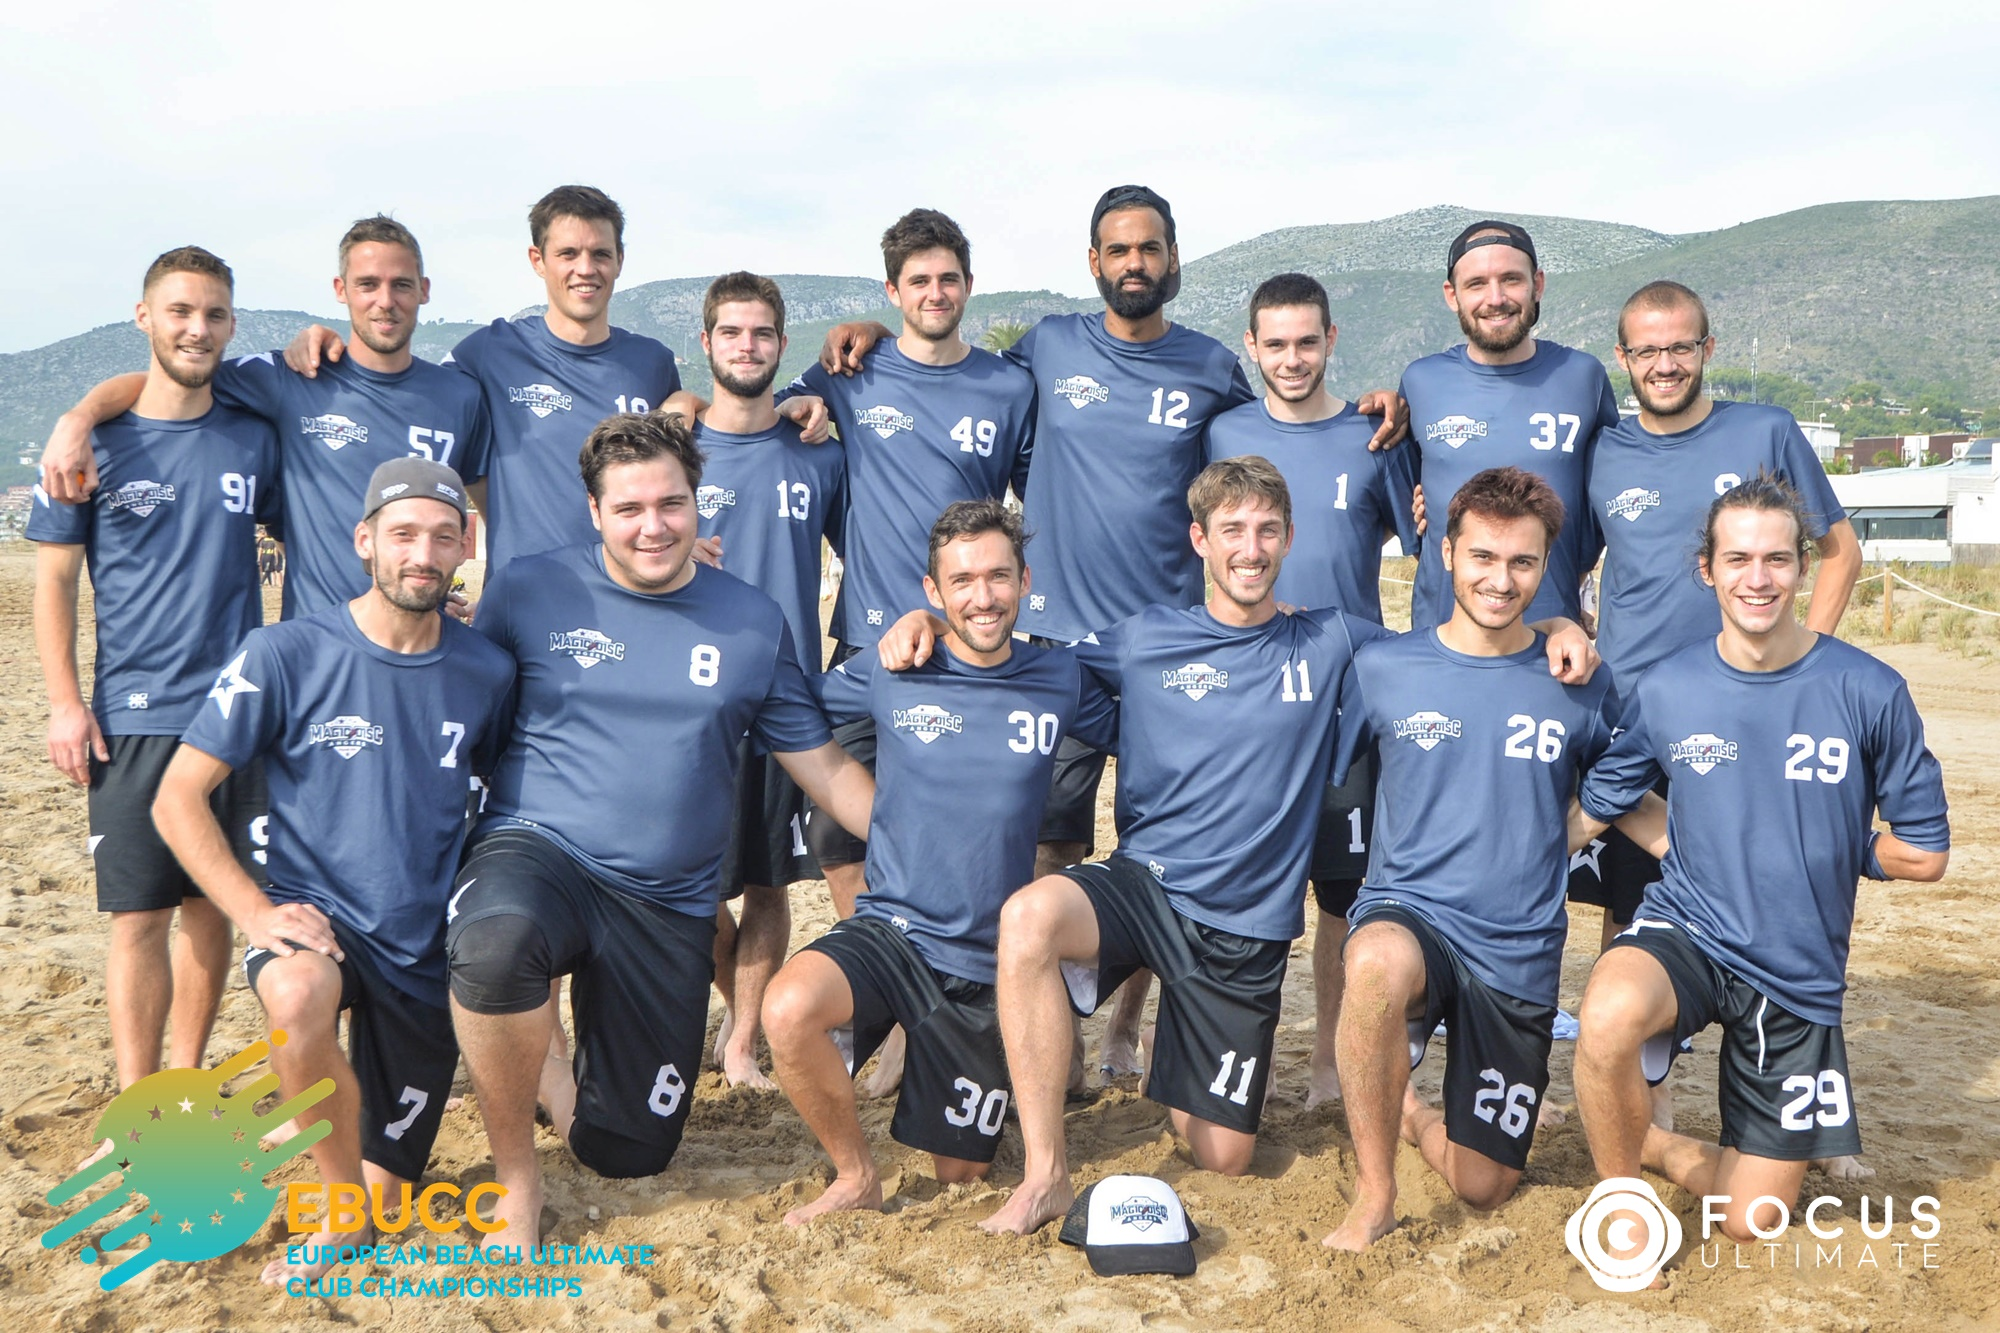 Team picture of Magic Disc Angers Men